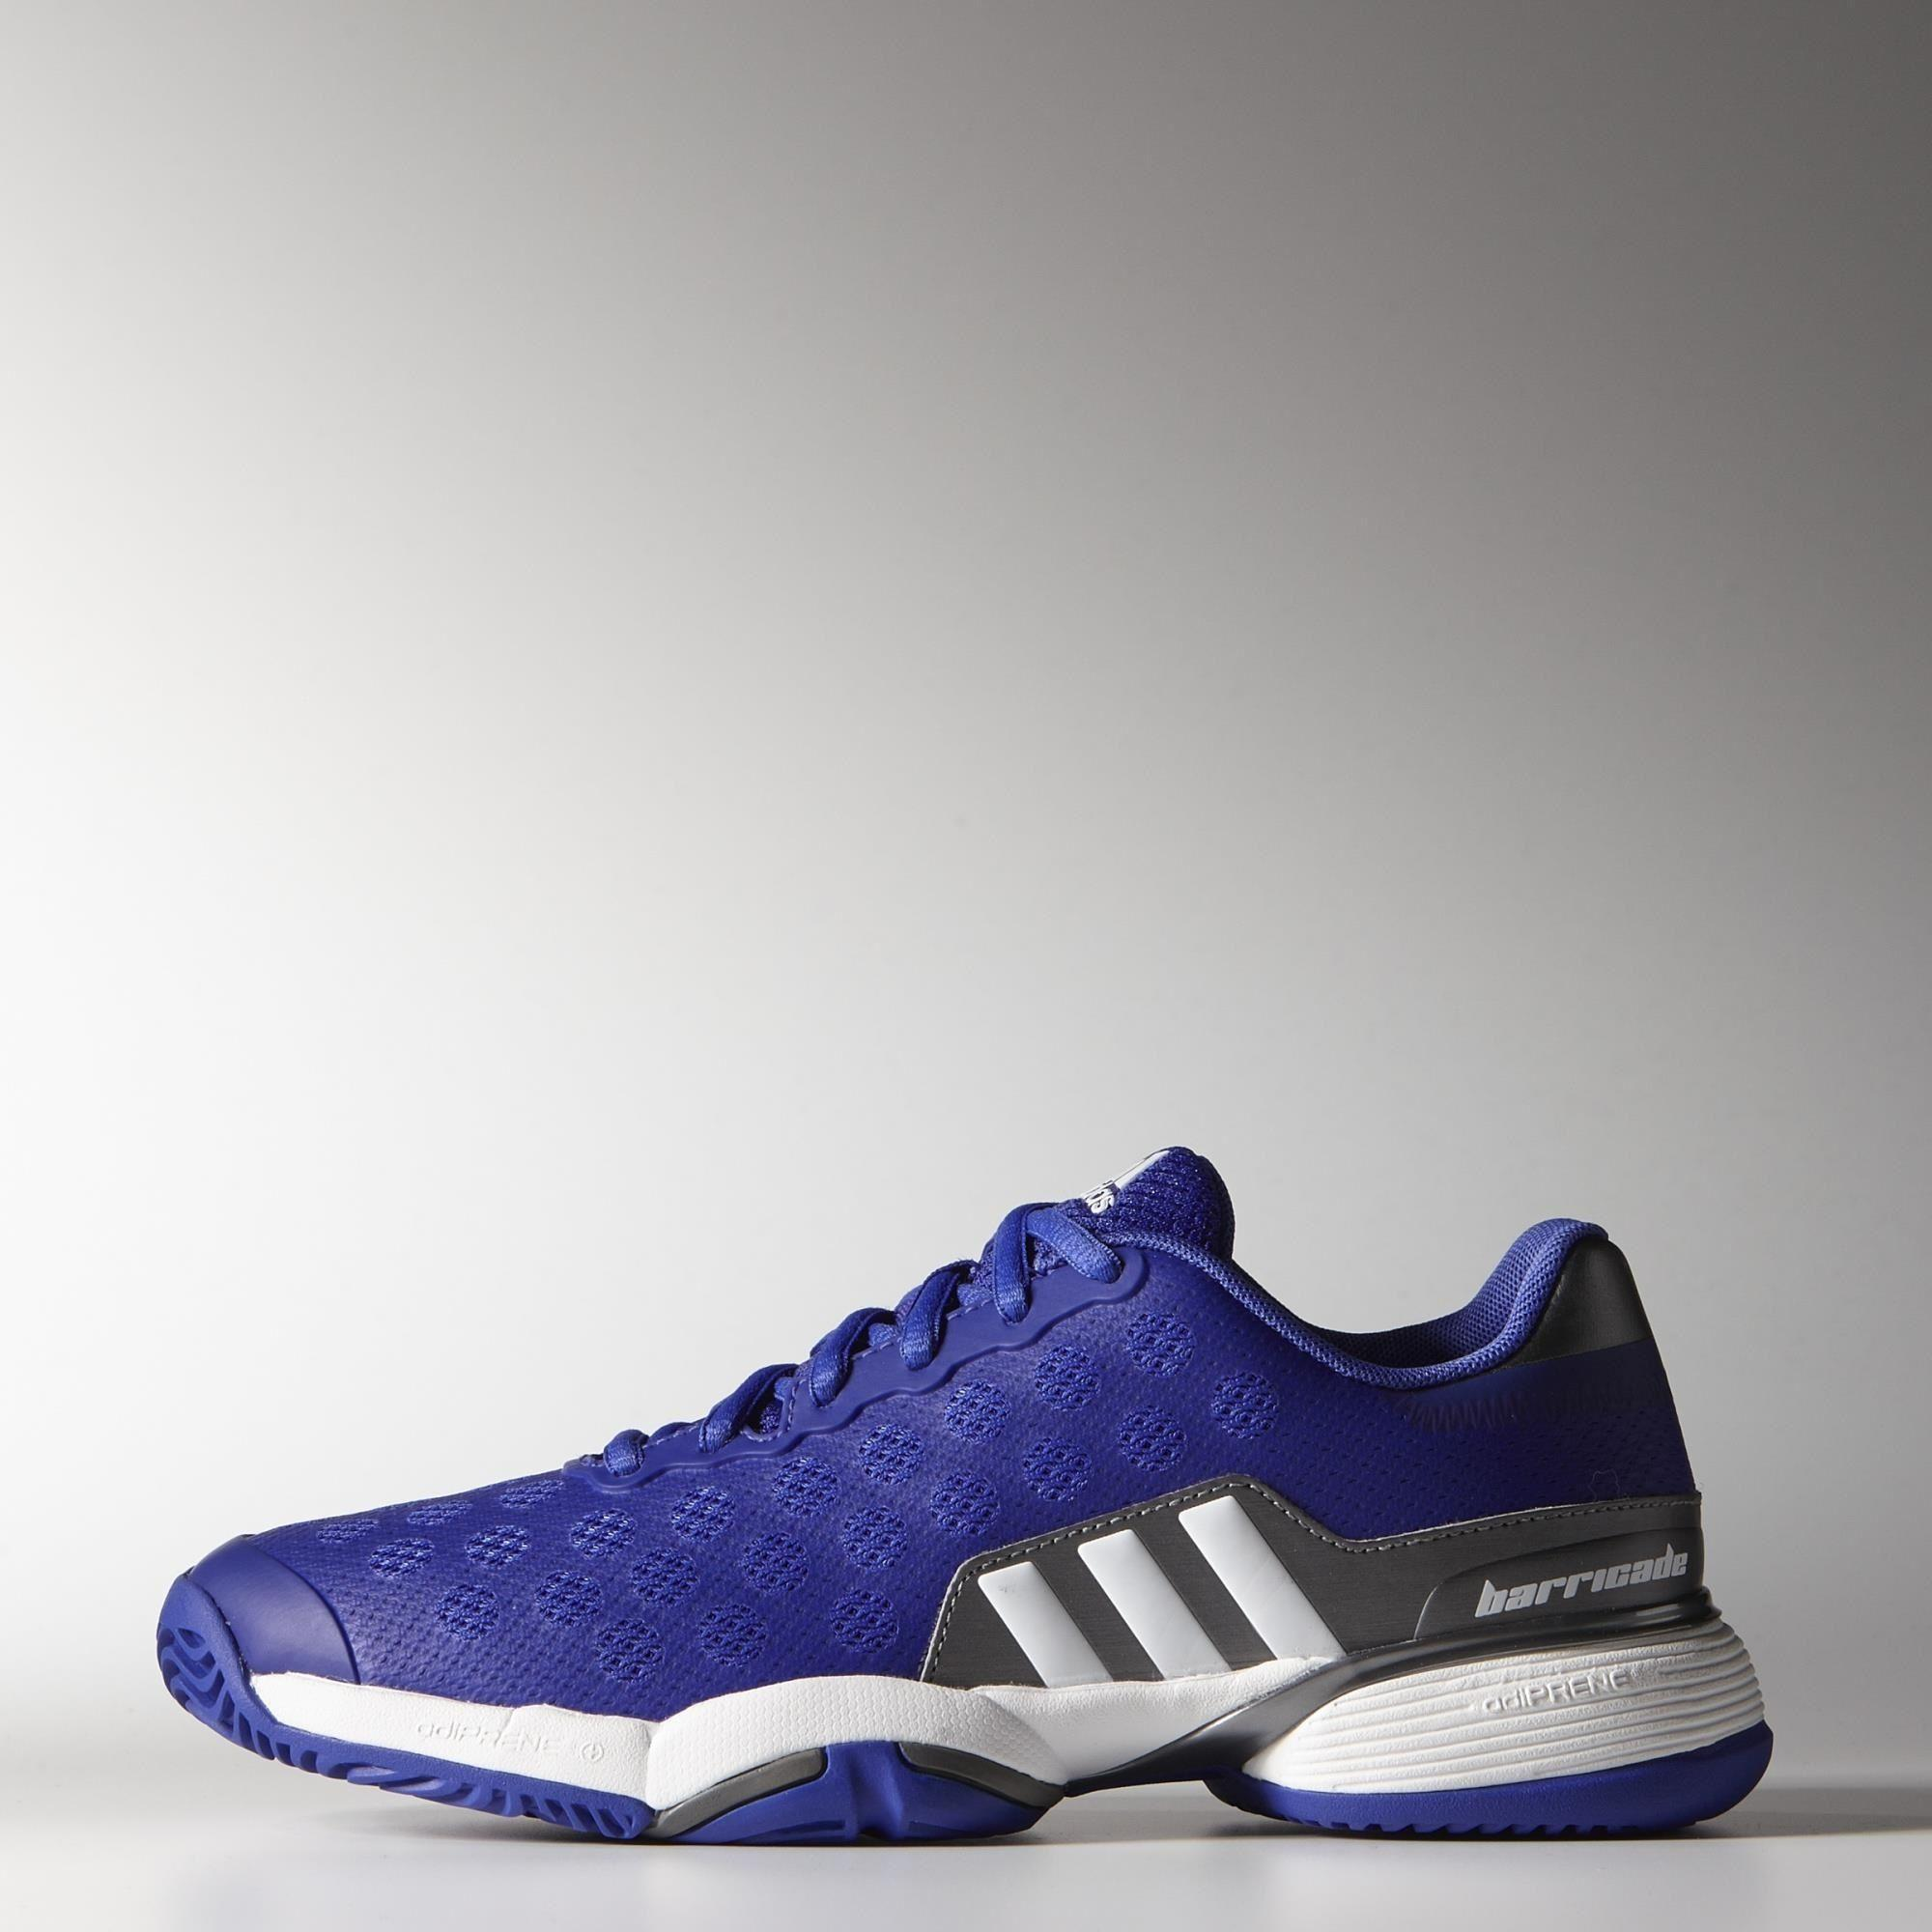 outlet store e46b2 dabd6 ... get adidas kids barricade 2015 xj tennis shoes purple blue 010d4 bd81c  ...